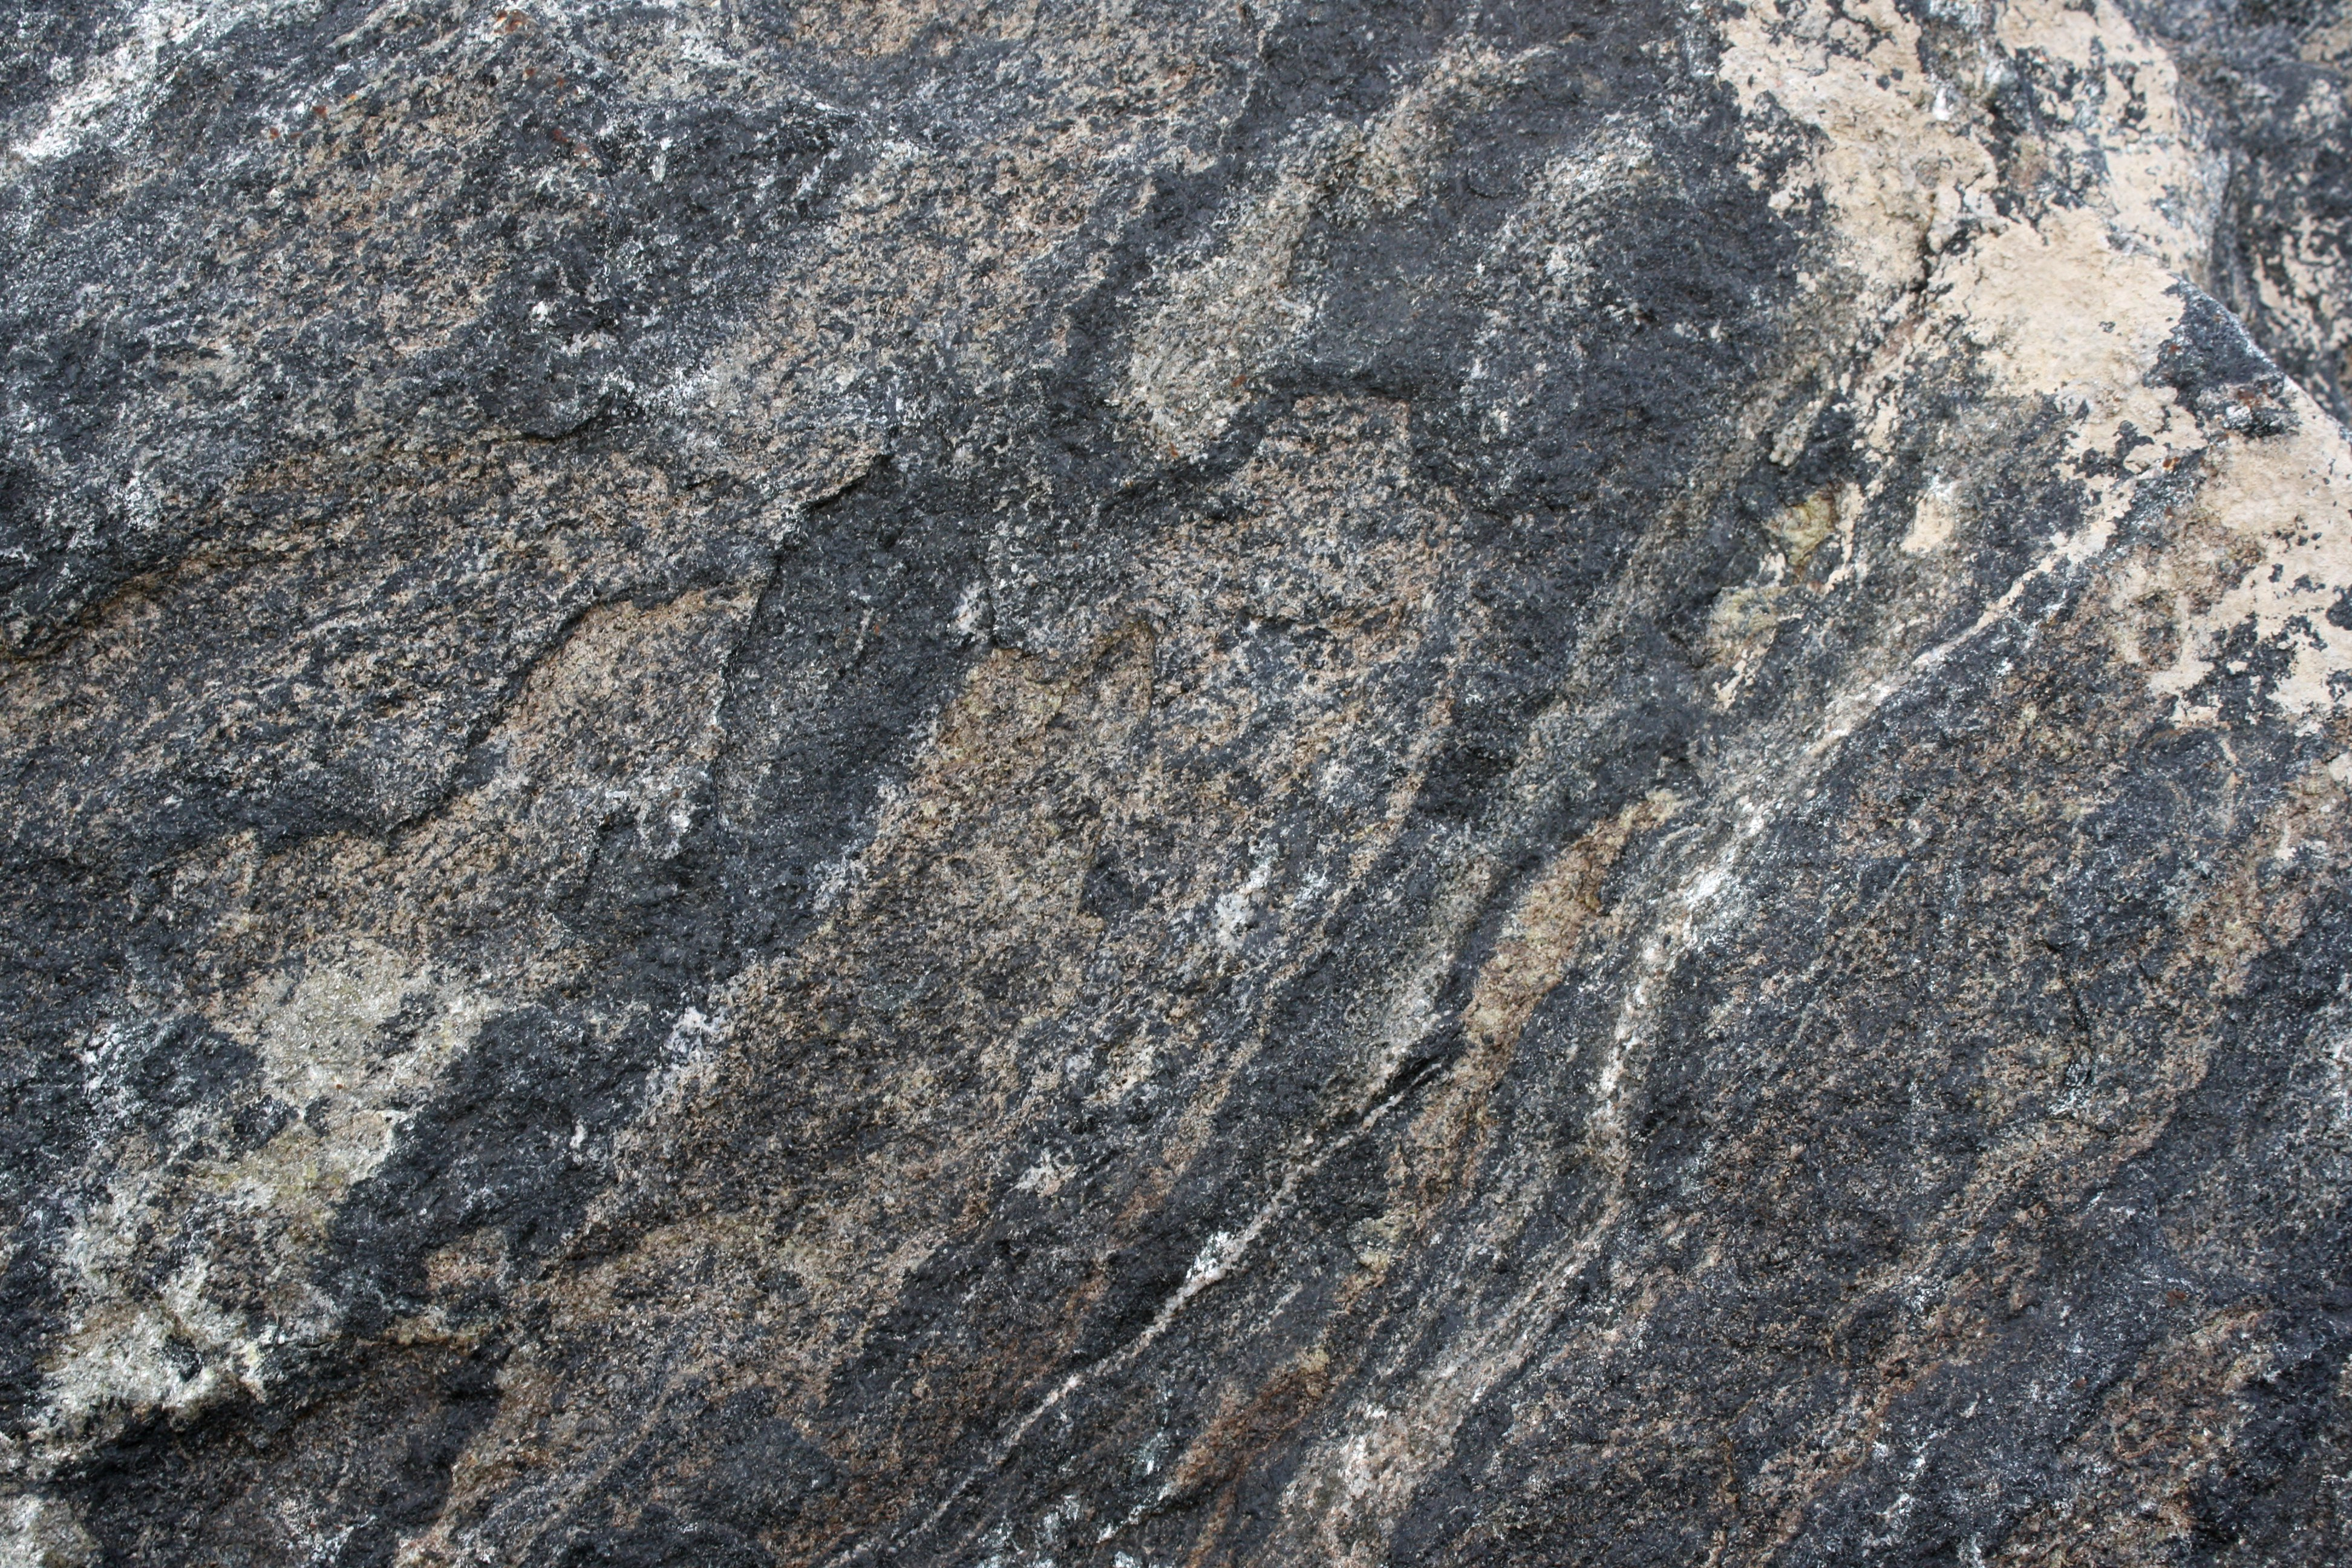 Black Schist Rock Texture With Diagonal Bands Picture